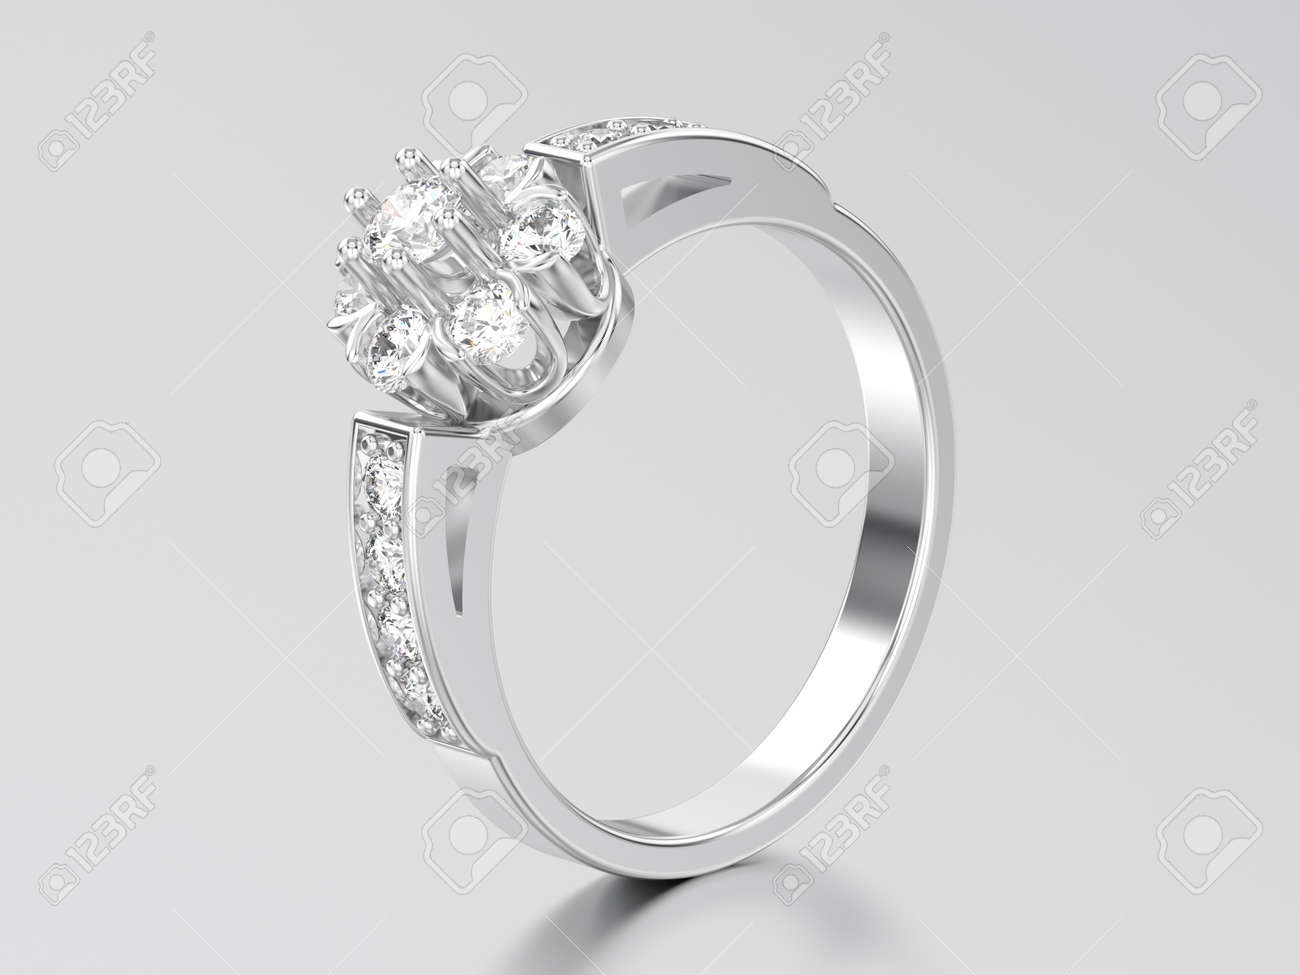 3d Illustration White Gold Or Silver Decorative Flower Diamond